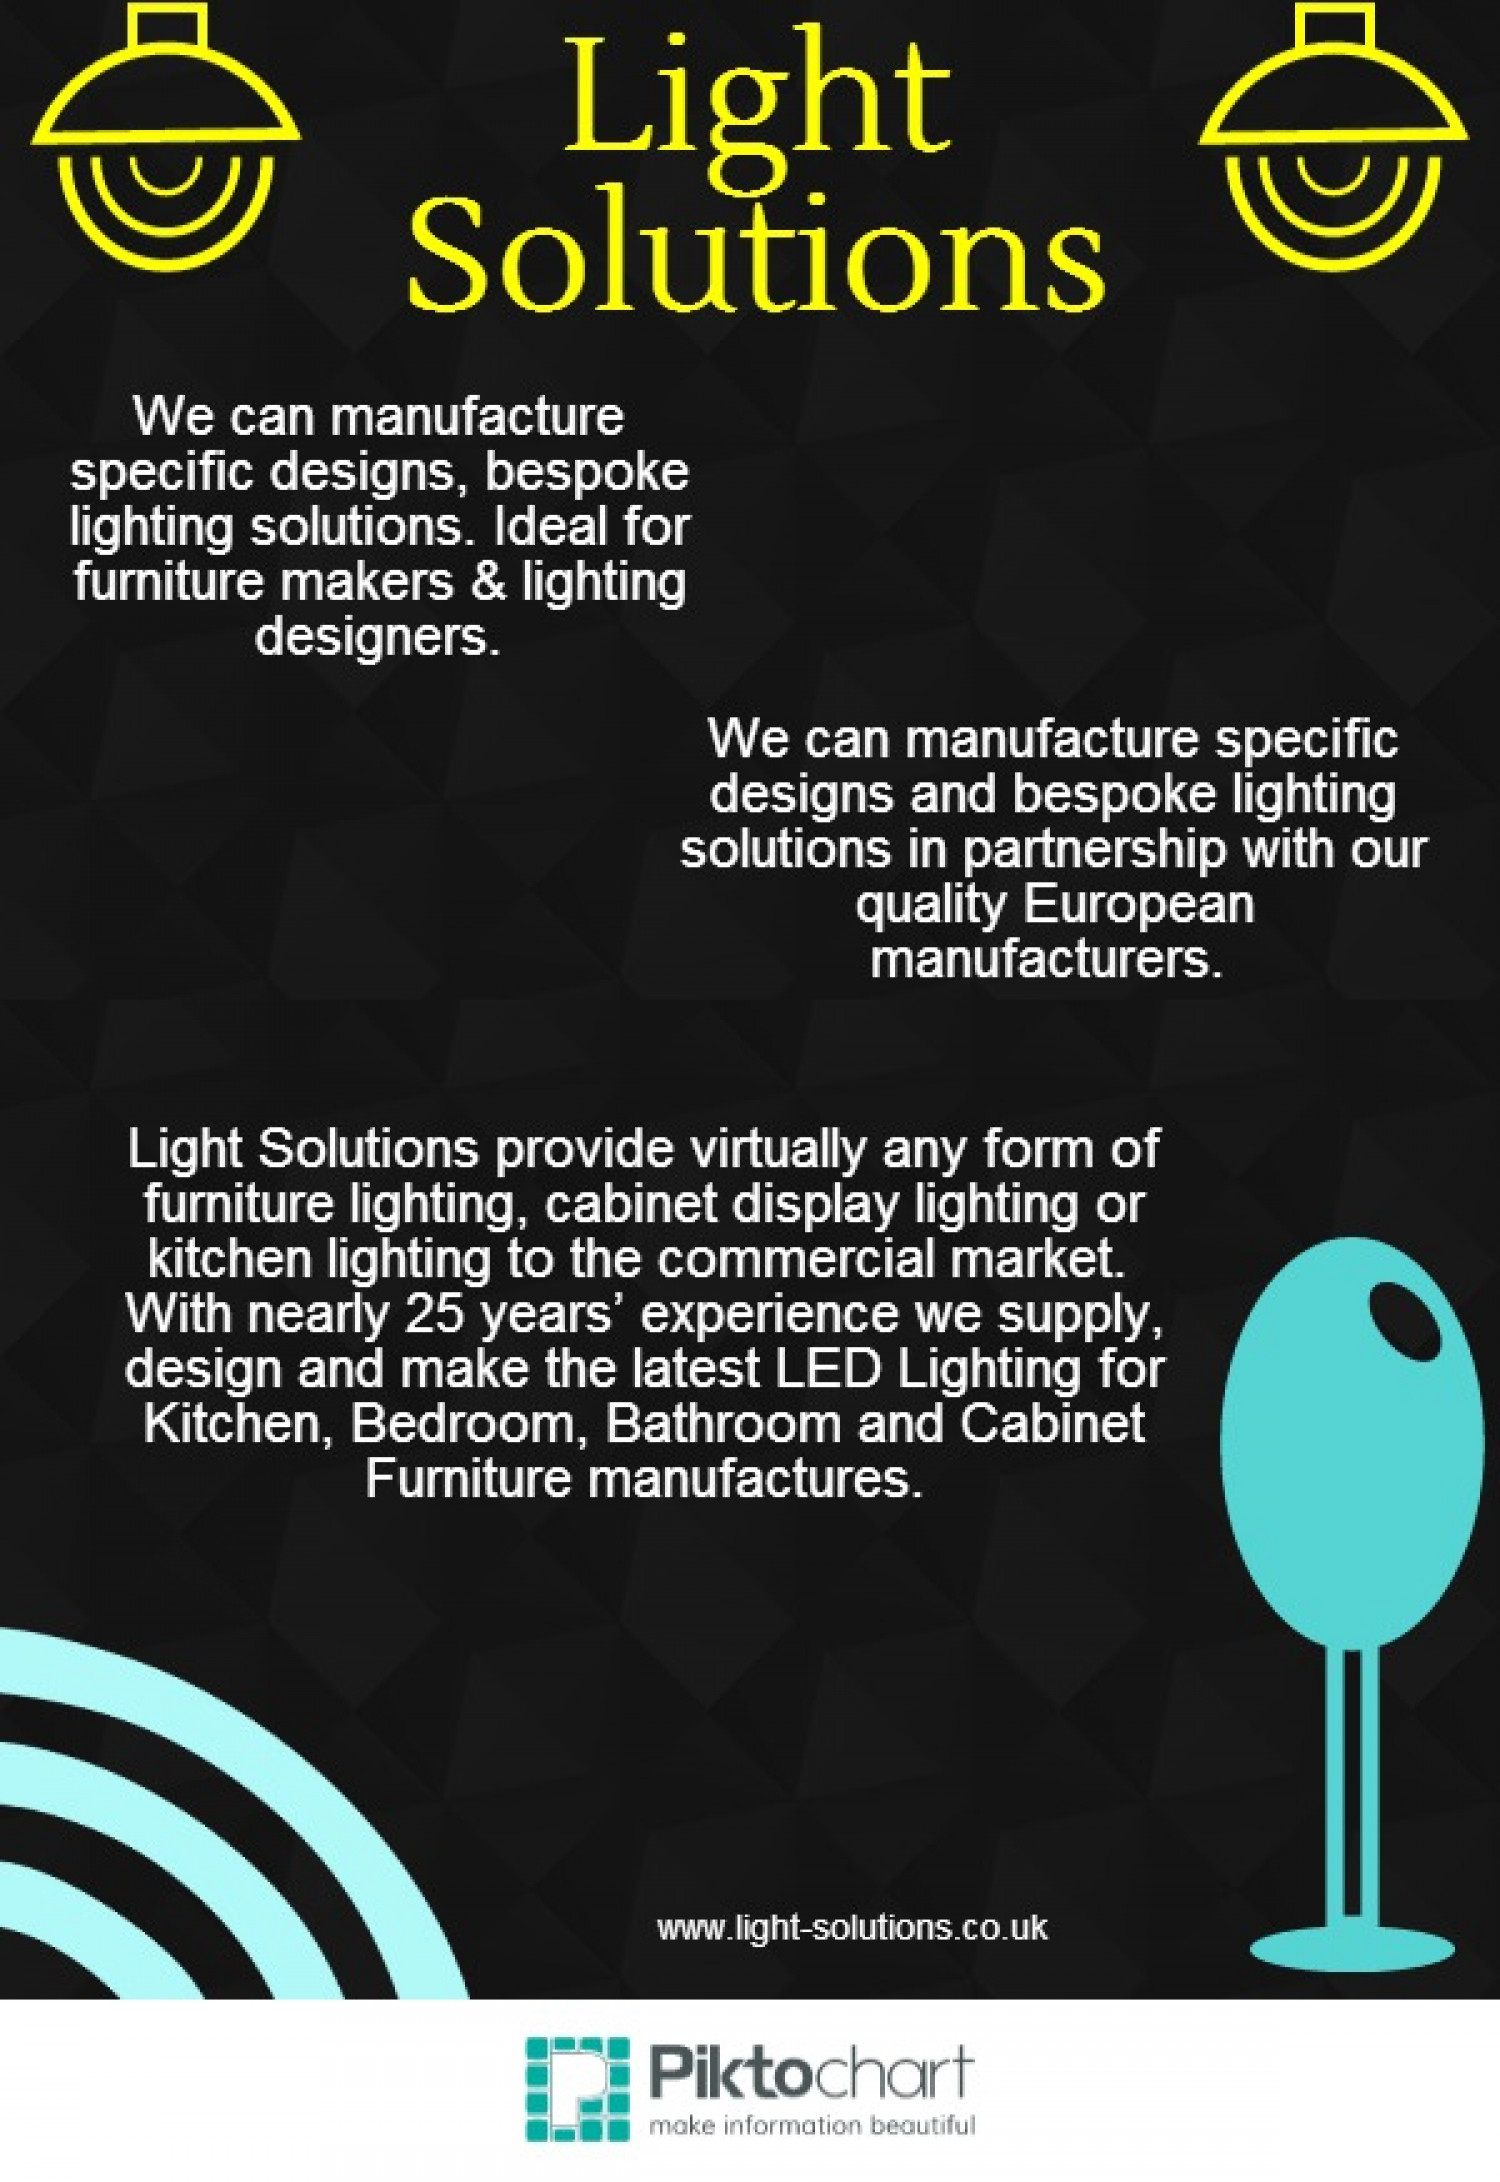 Light Solutions Infographic